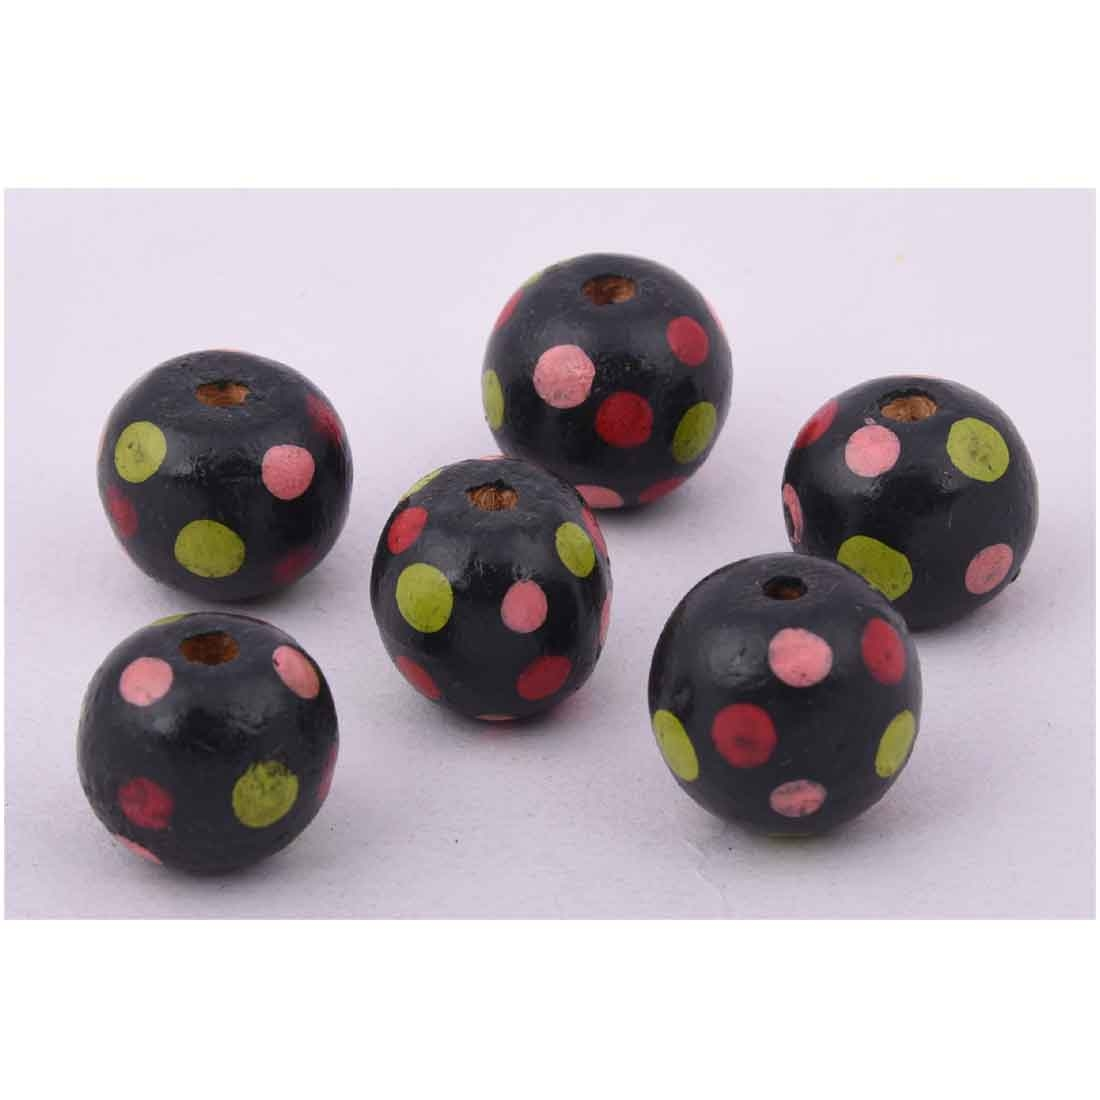 Beads India 1700084 Handcrafted Wooden Beads/Discounts Above 500 pcs